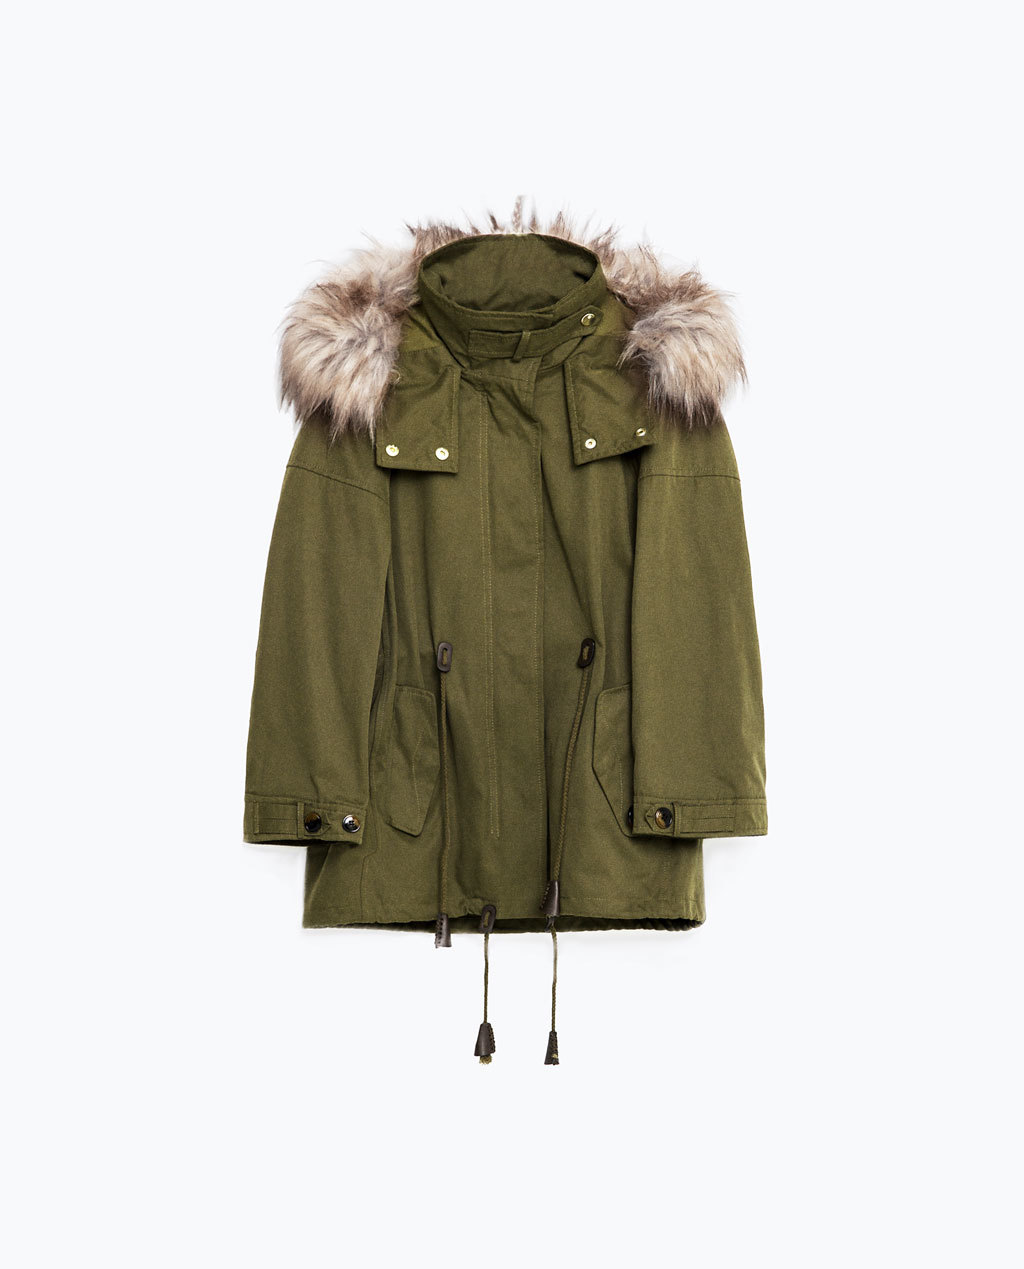 Short Parka - pattern: plain; collar: funnel; fit: loose; style: parka; back detail: hood; length: mid thigh; predominant colour: khaki; secondary colour: stone; occasions: casual; fibres: cotton - 100%; hip detail: added detail/embellishment at hip; sleeve length: long sleeve; sleeve style: standard; texture group: cotton feel fabrics; collar break: high; pattern type: fabric; embellishment: fur; season: s/s 2016